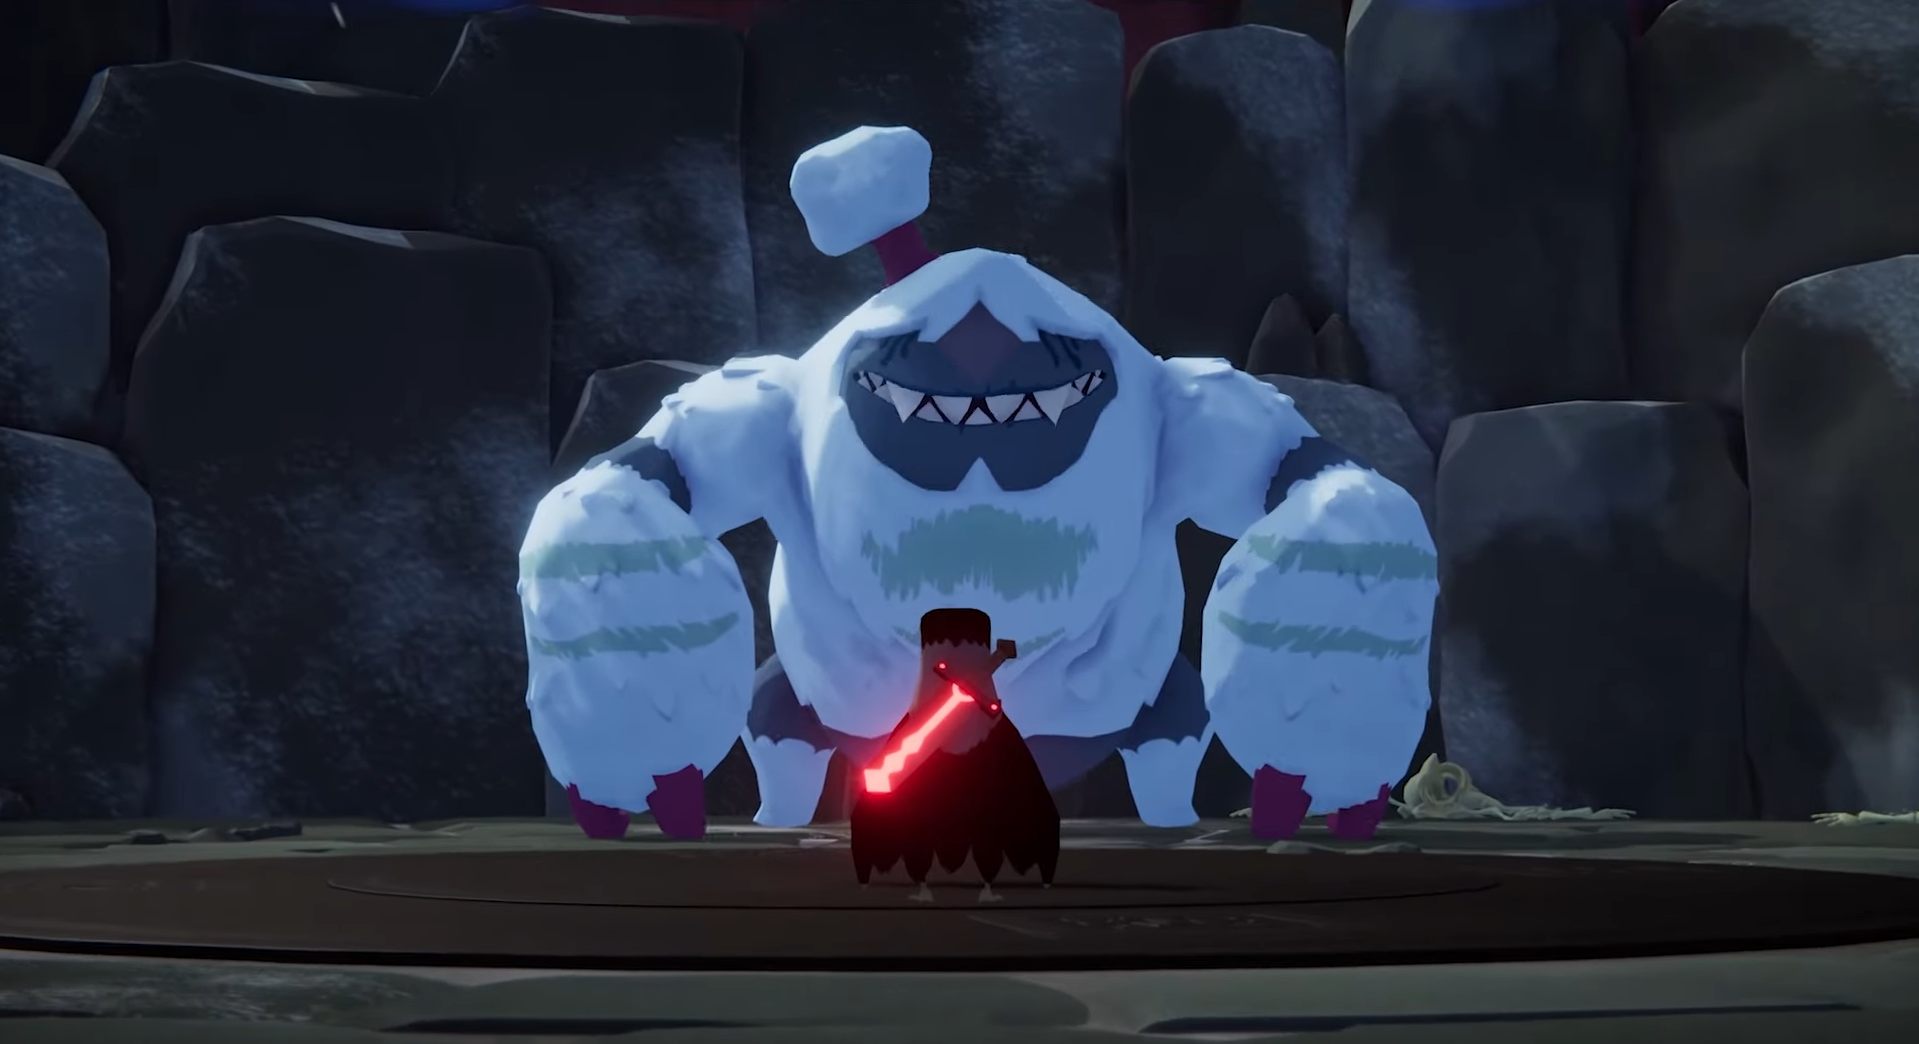 Betty, a yeti, grins looking down at a tiny crow with a sword